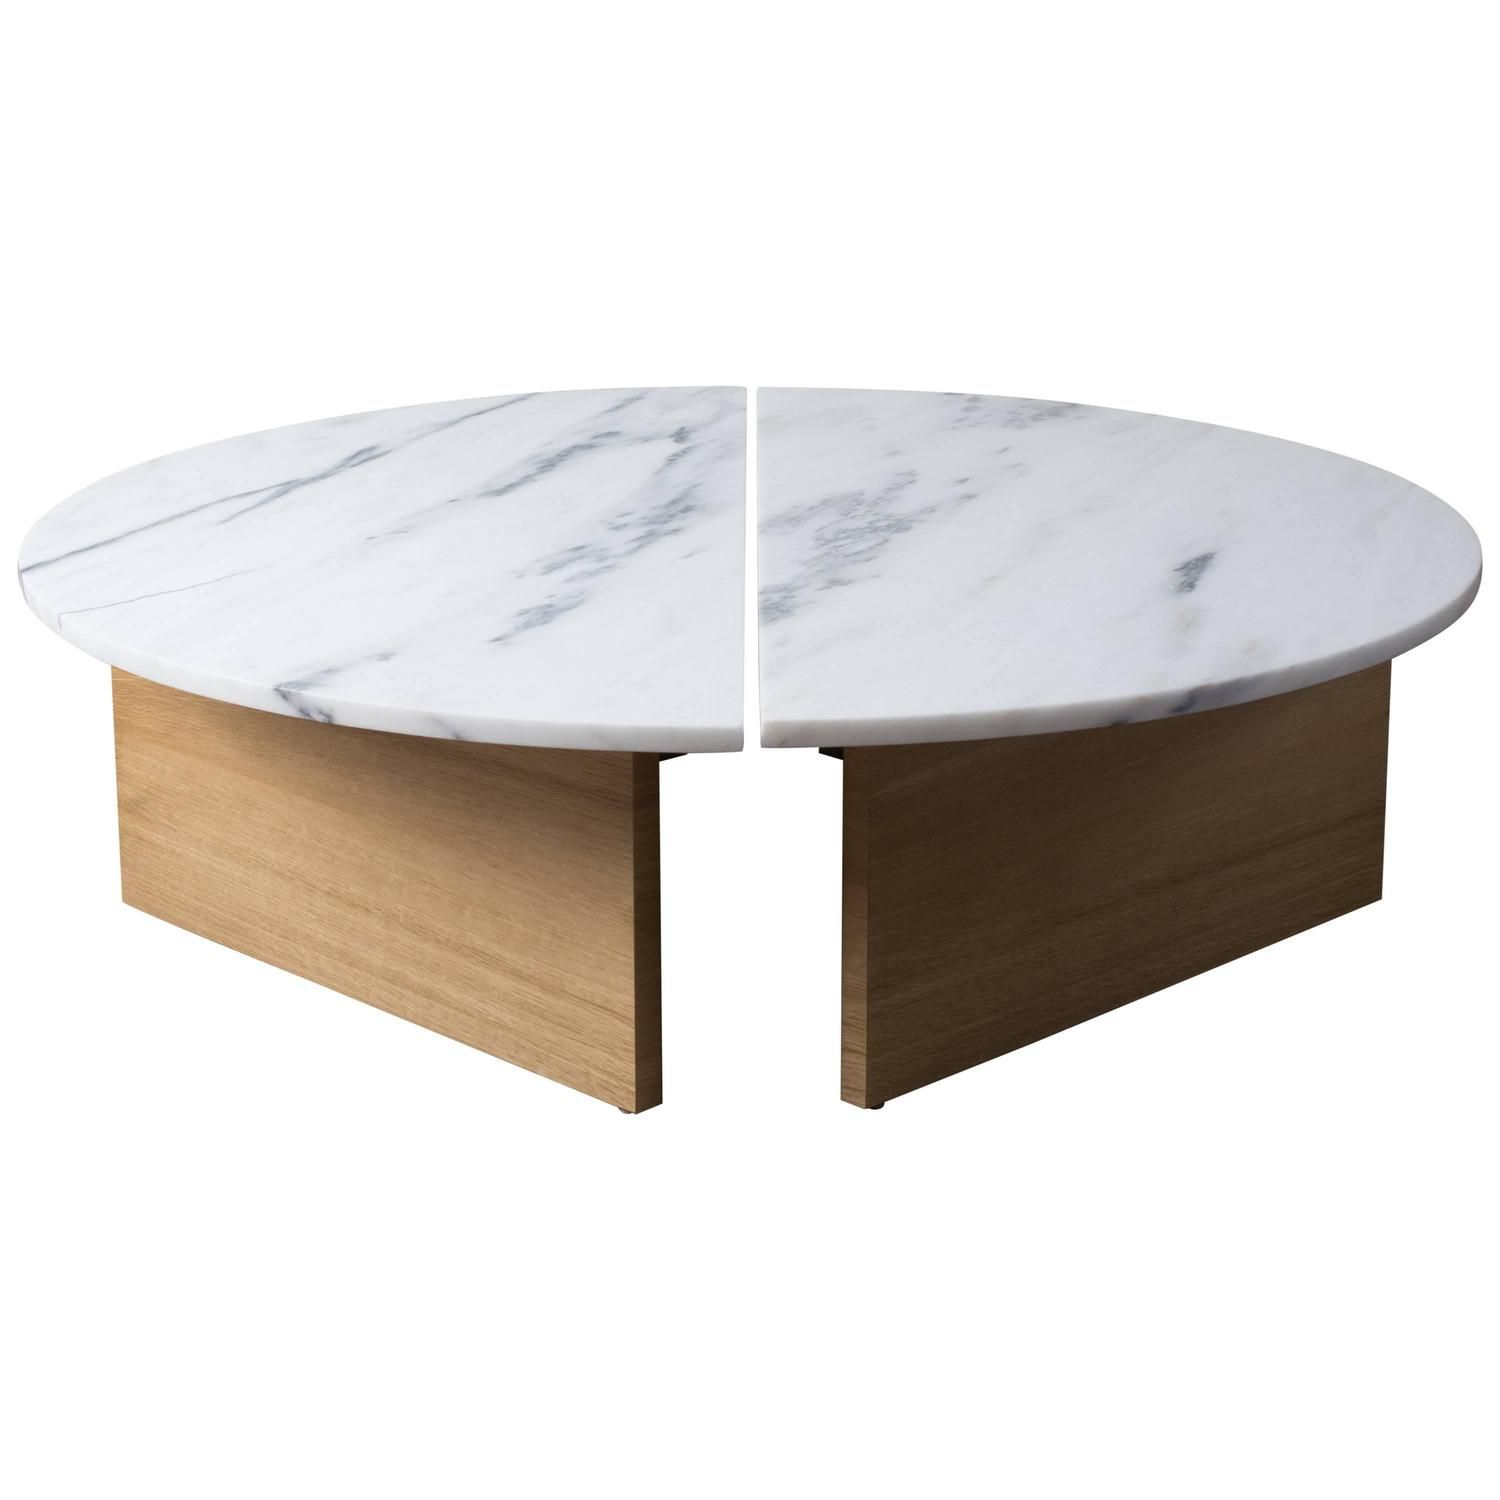 Charmant Contemporary Half Moon Coffee Table In Imperial Danby Marble And White Oak